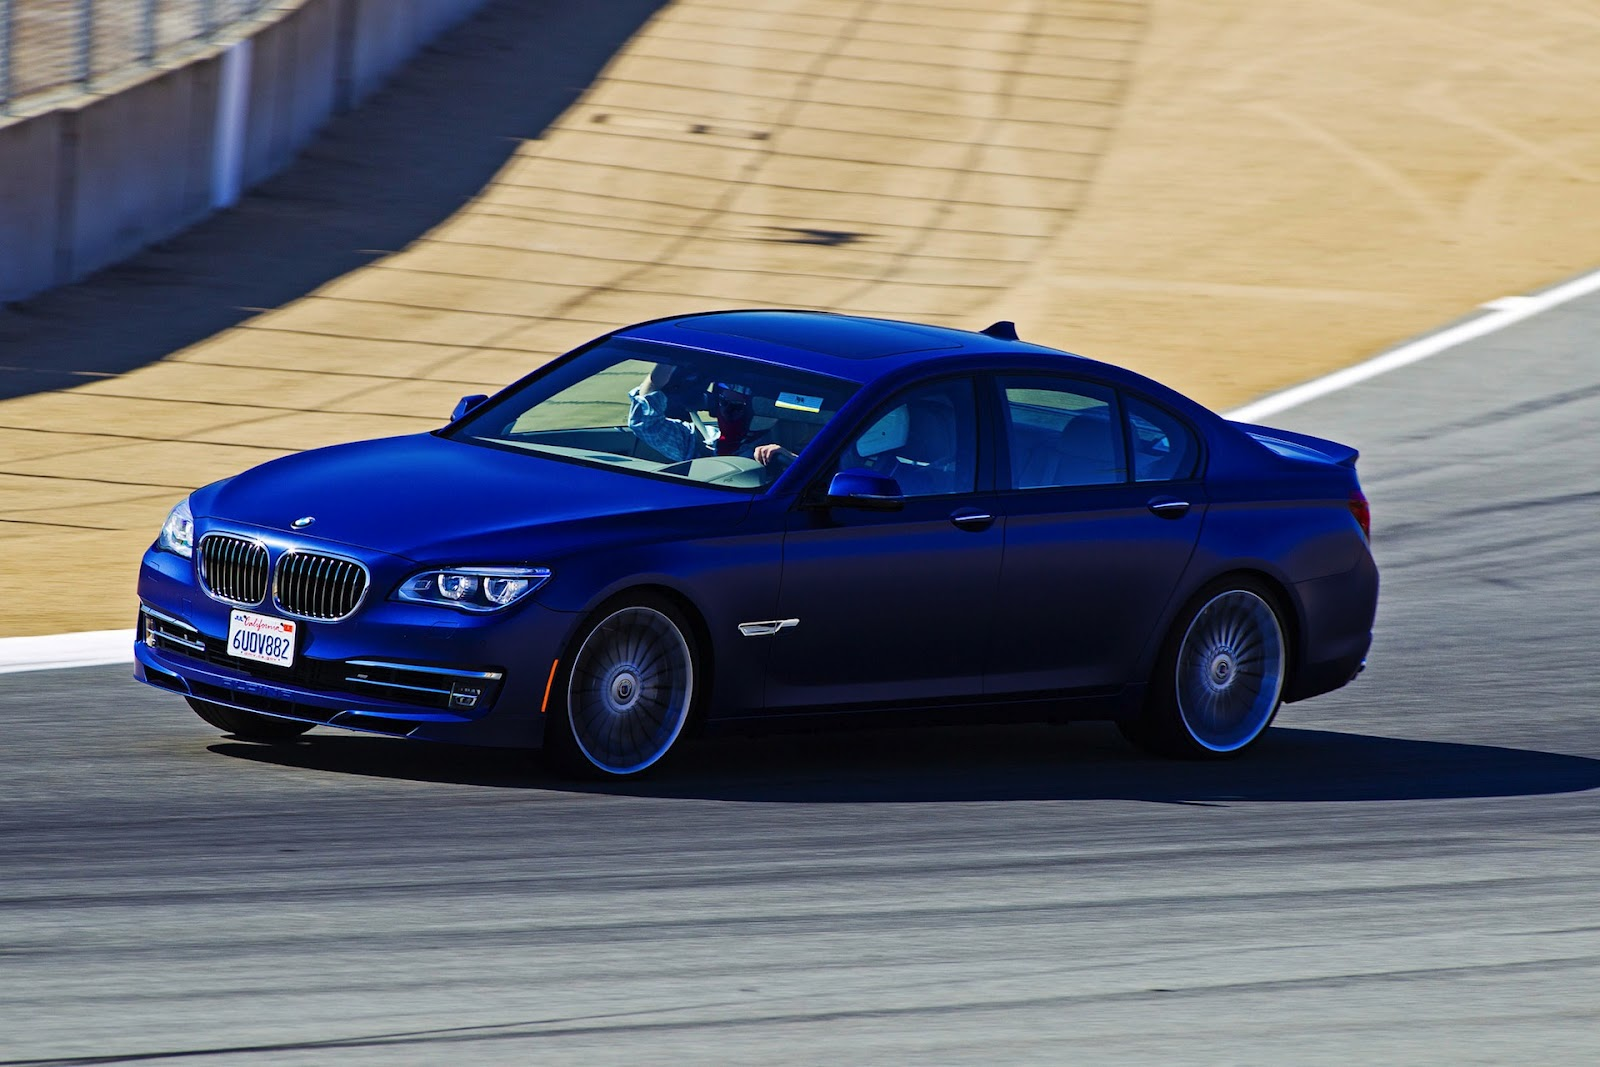 The 2013 alpina b7 s v8 produces 540 horsepower with 538 ft lb of torque and a top speed of 312km h 194 mph a full gallery after the jump